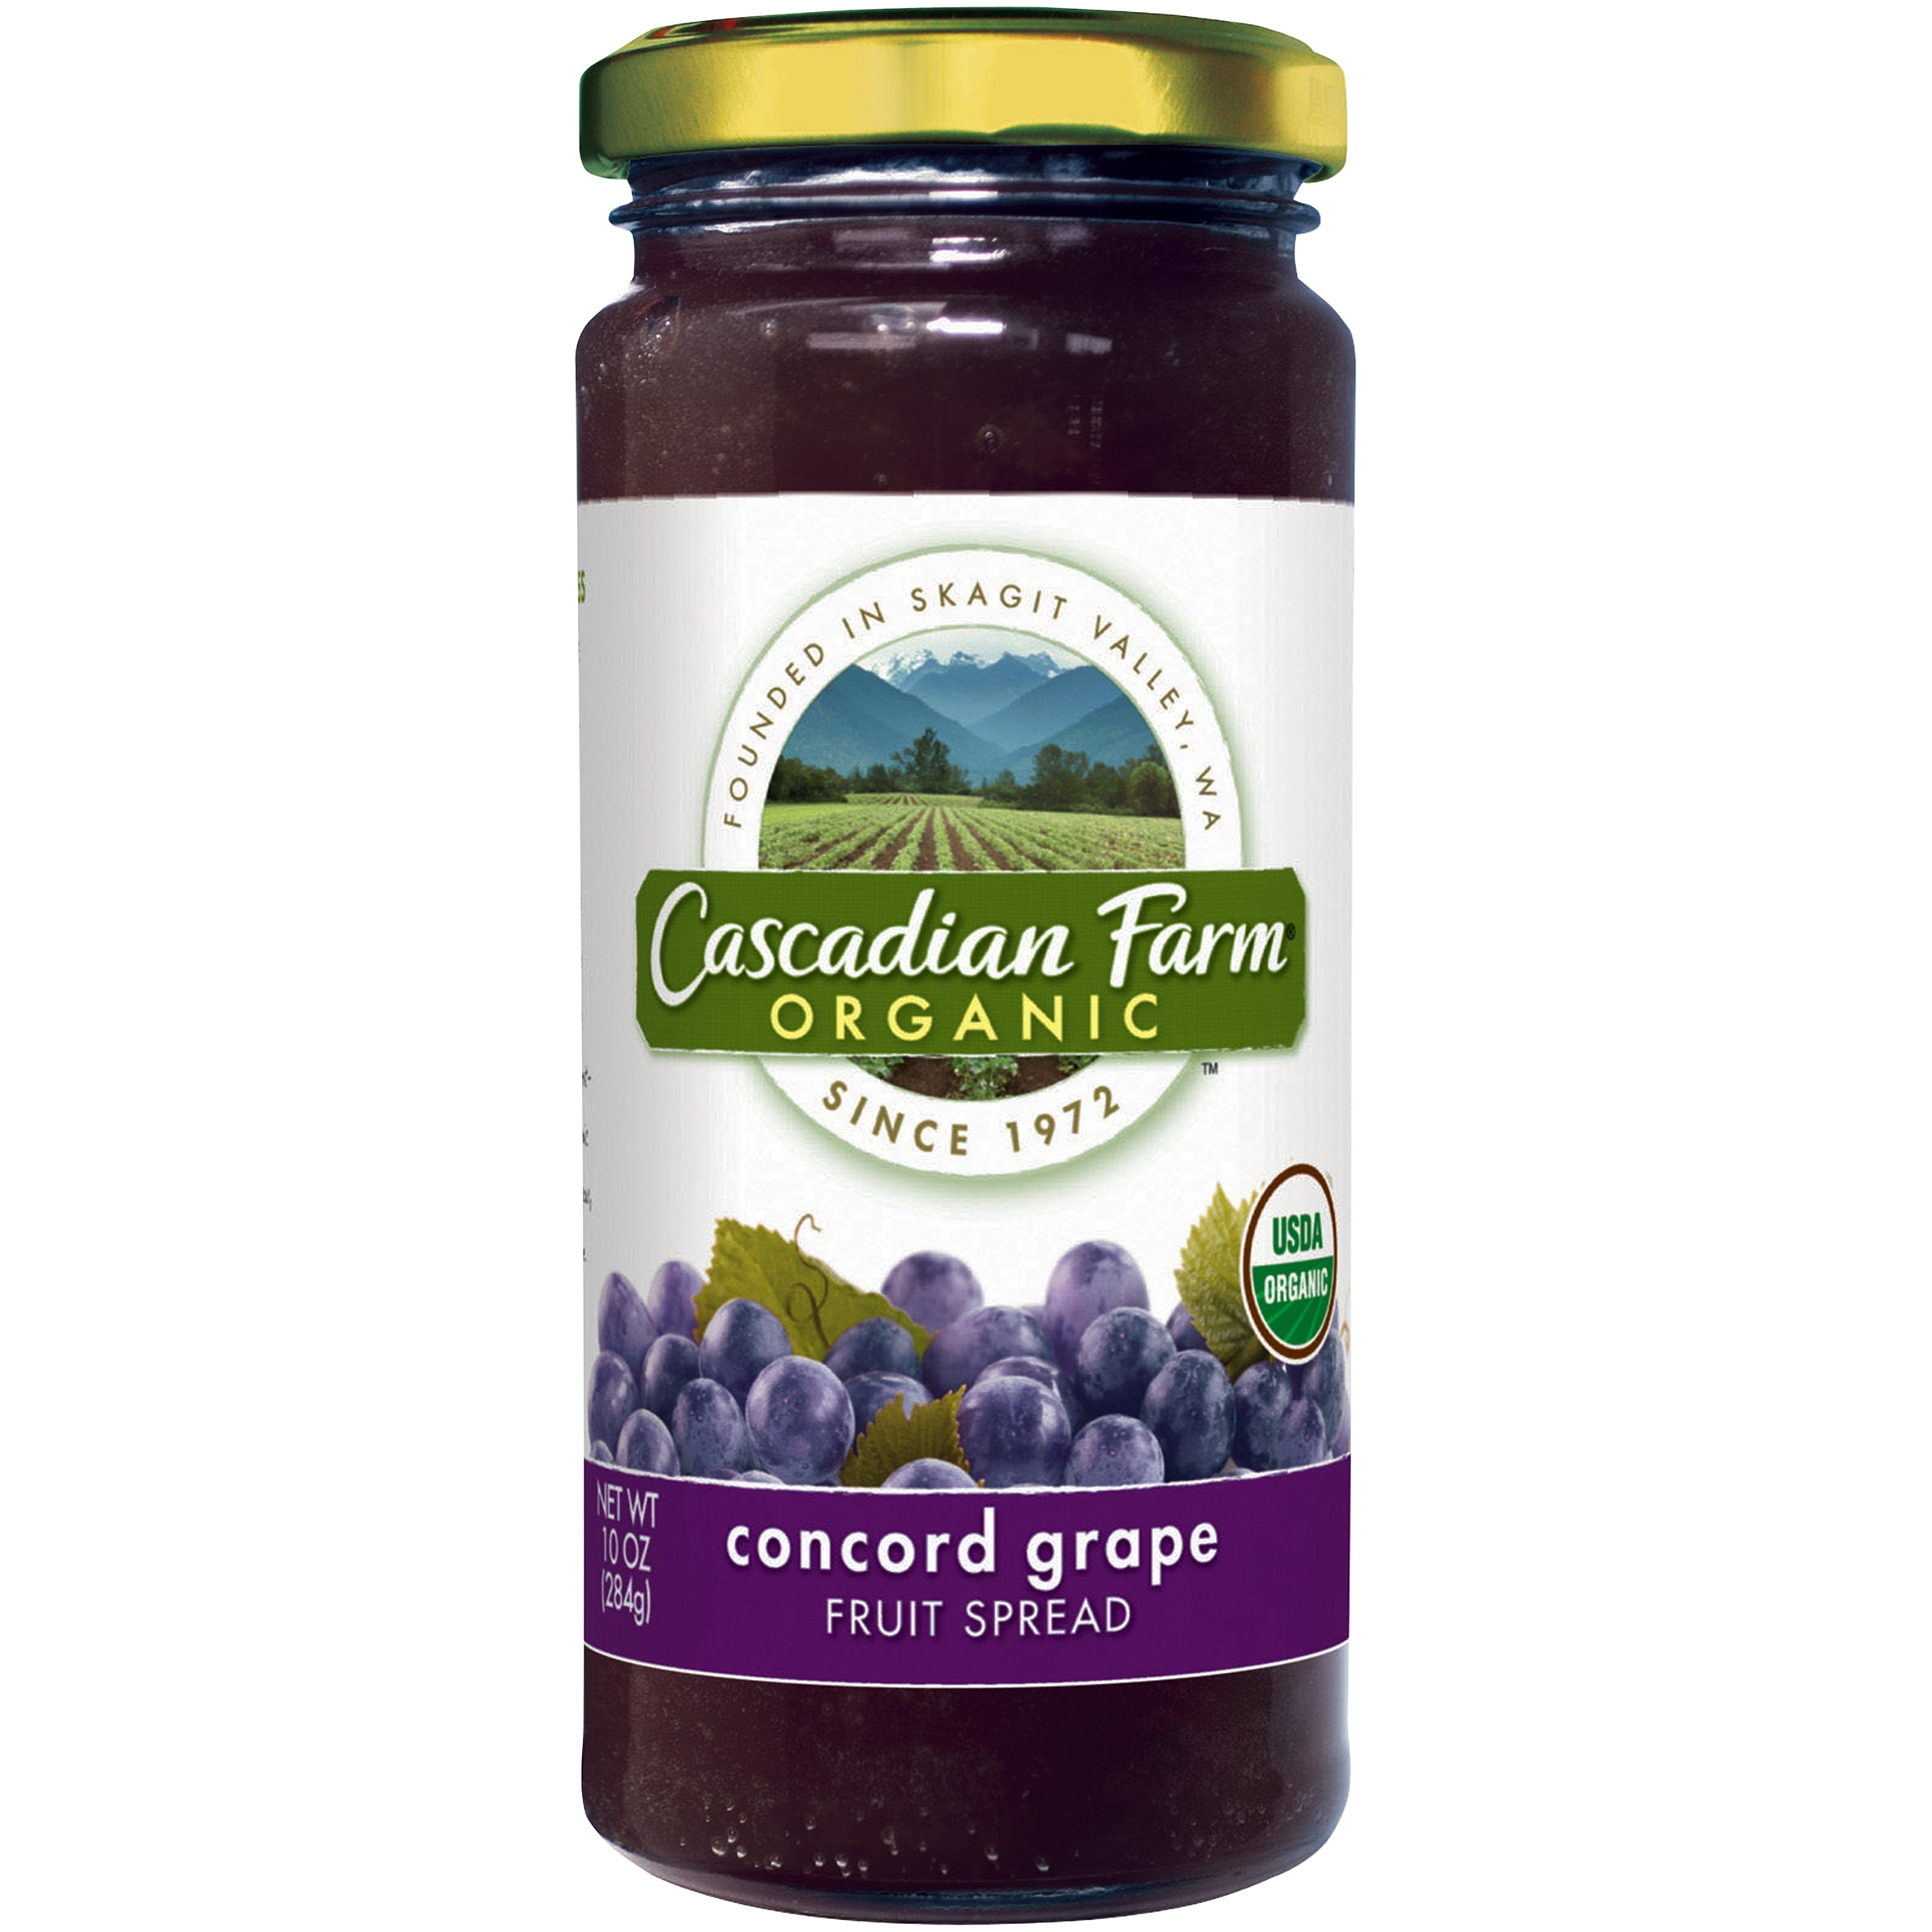 Cascadian Farm Organic Concord Grape Fruit Spread, 10.0 OZ